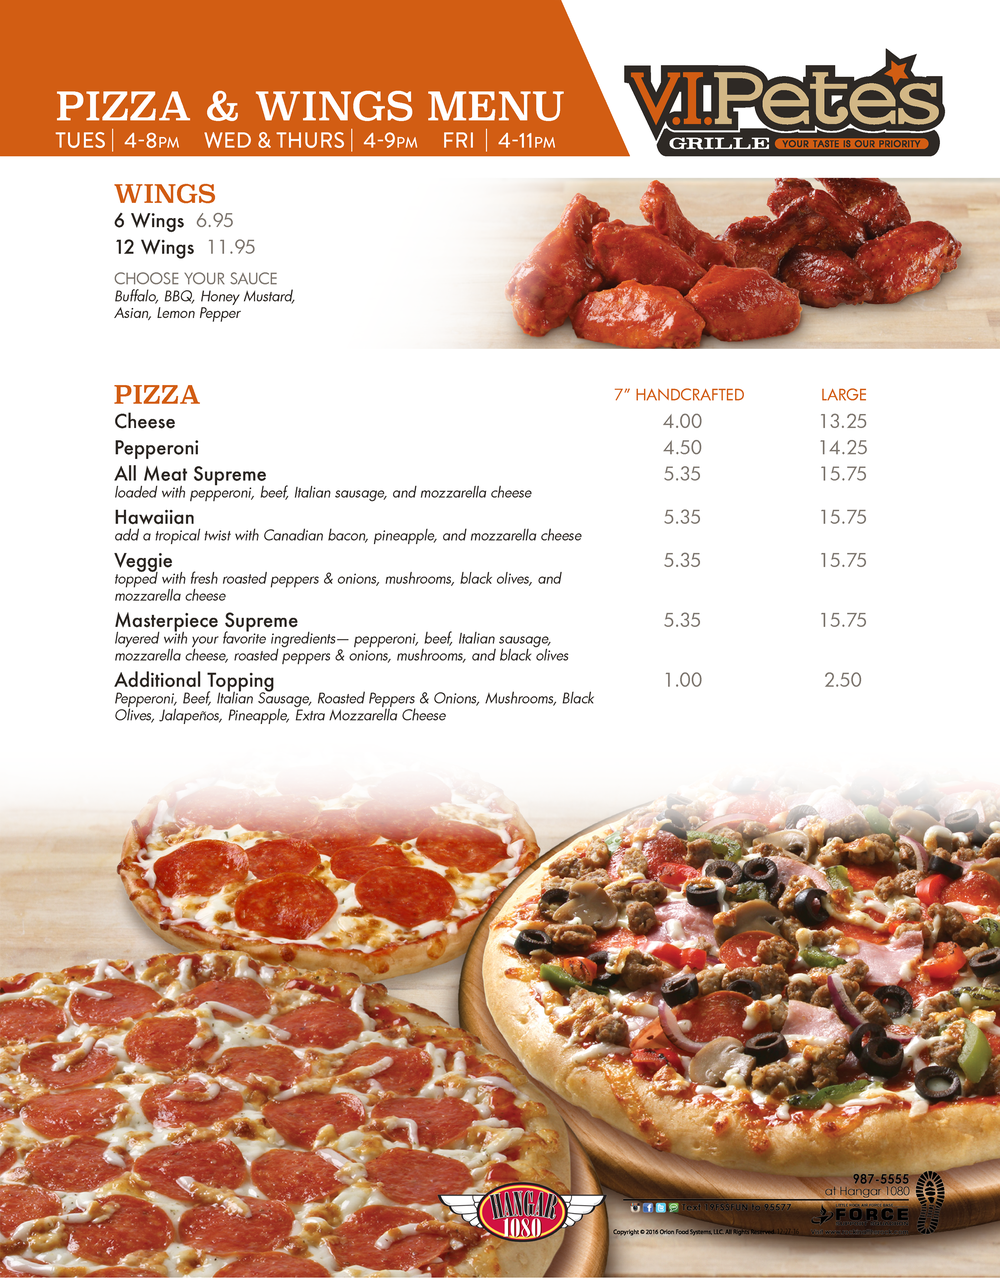 H1080 Pizza and Wings Menu.jpg